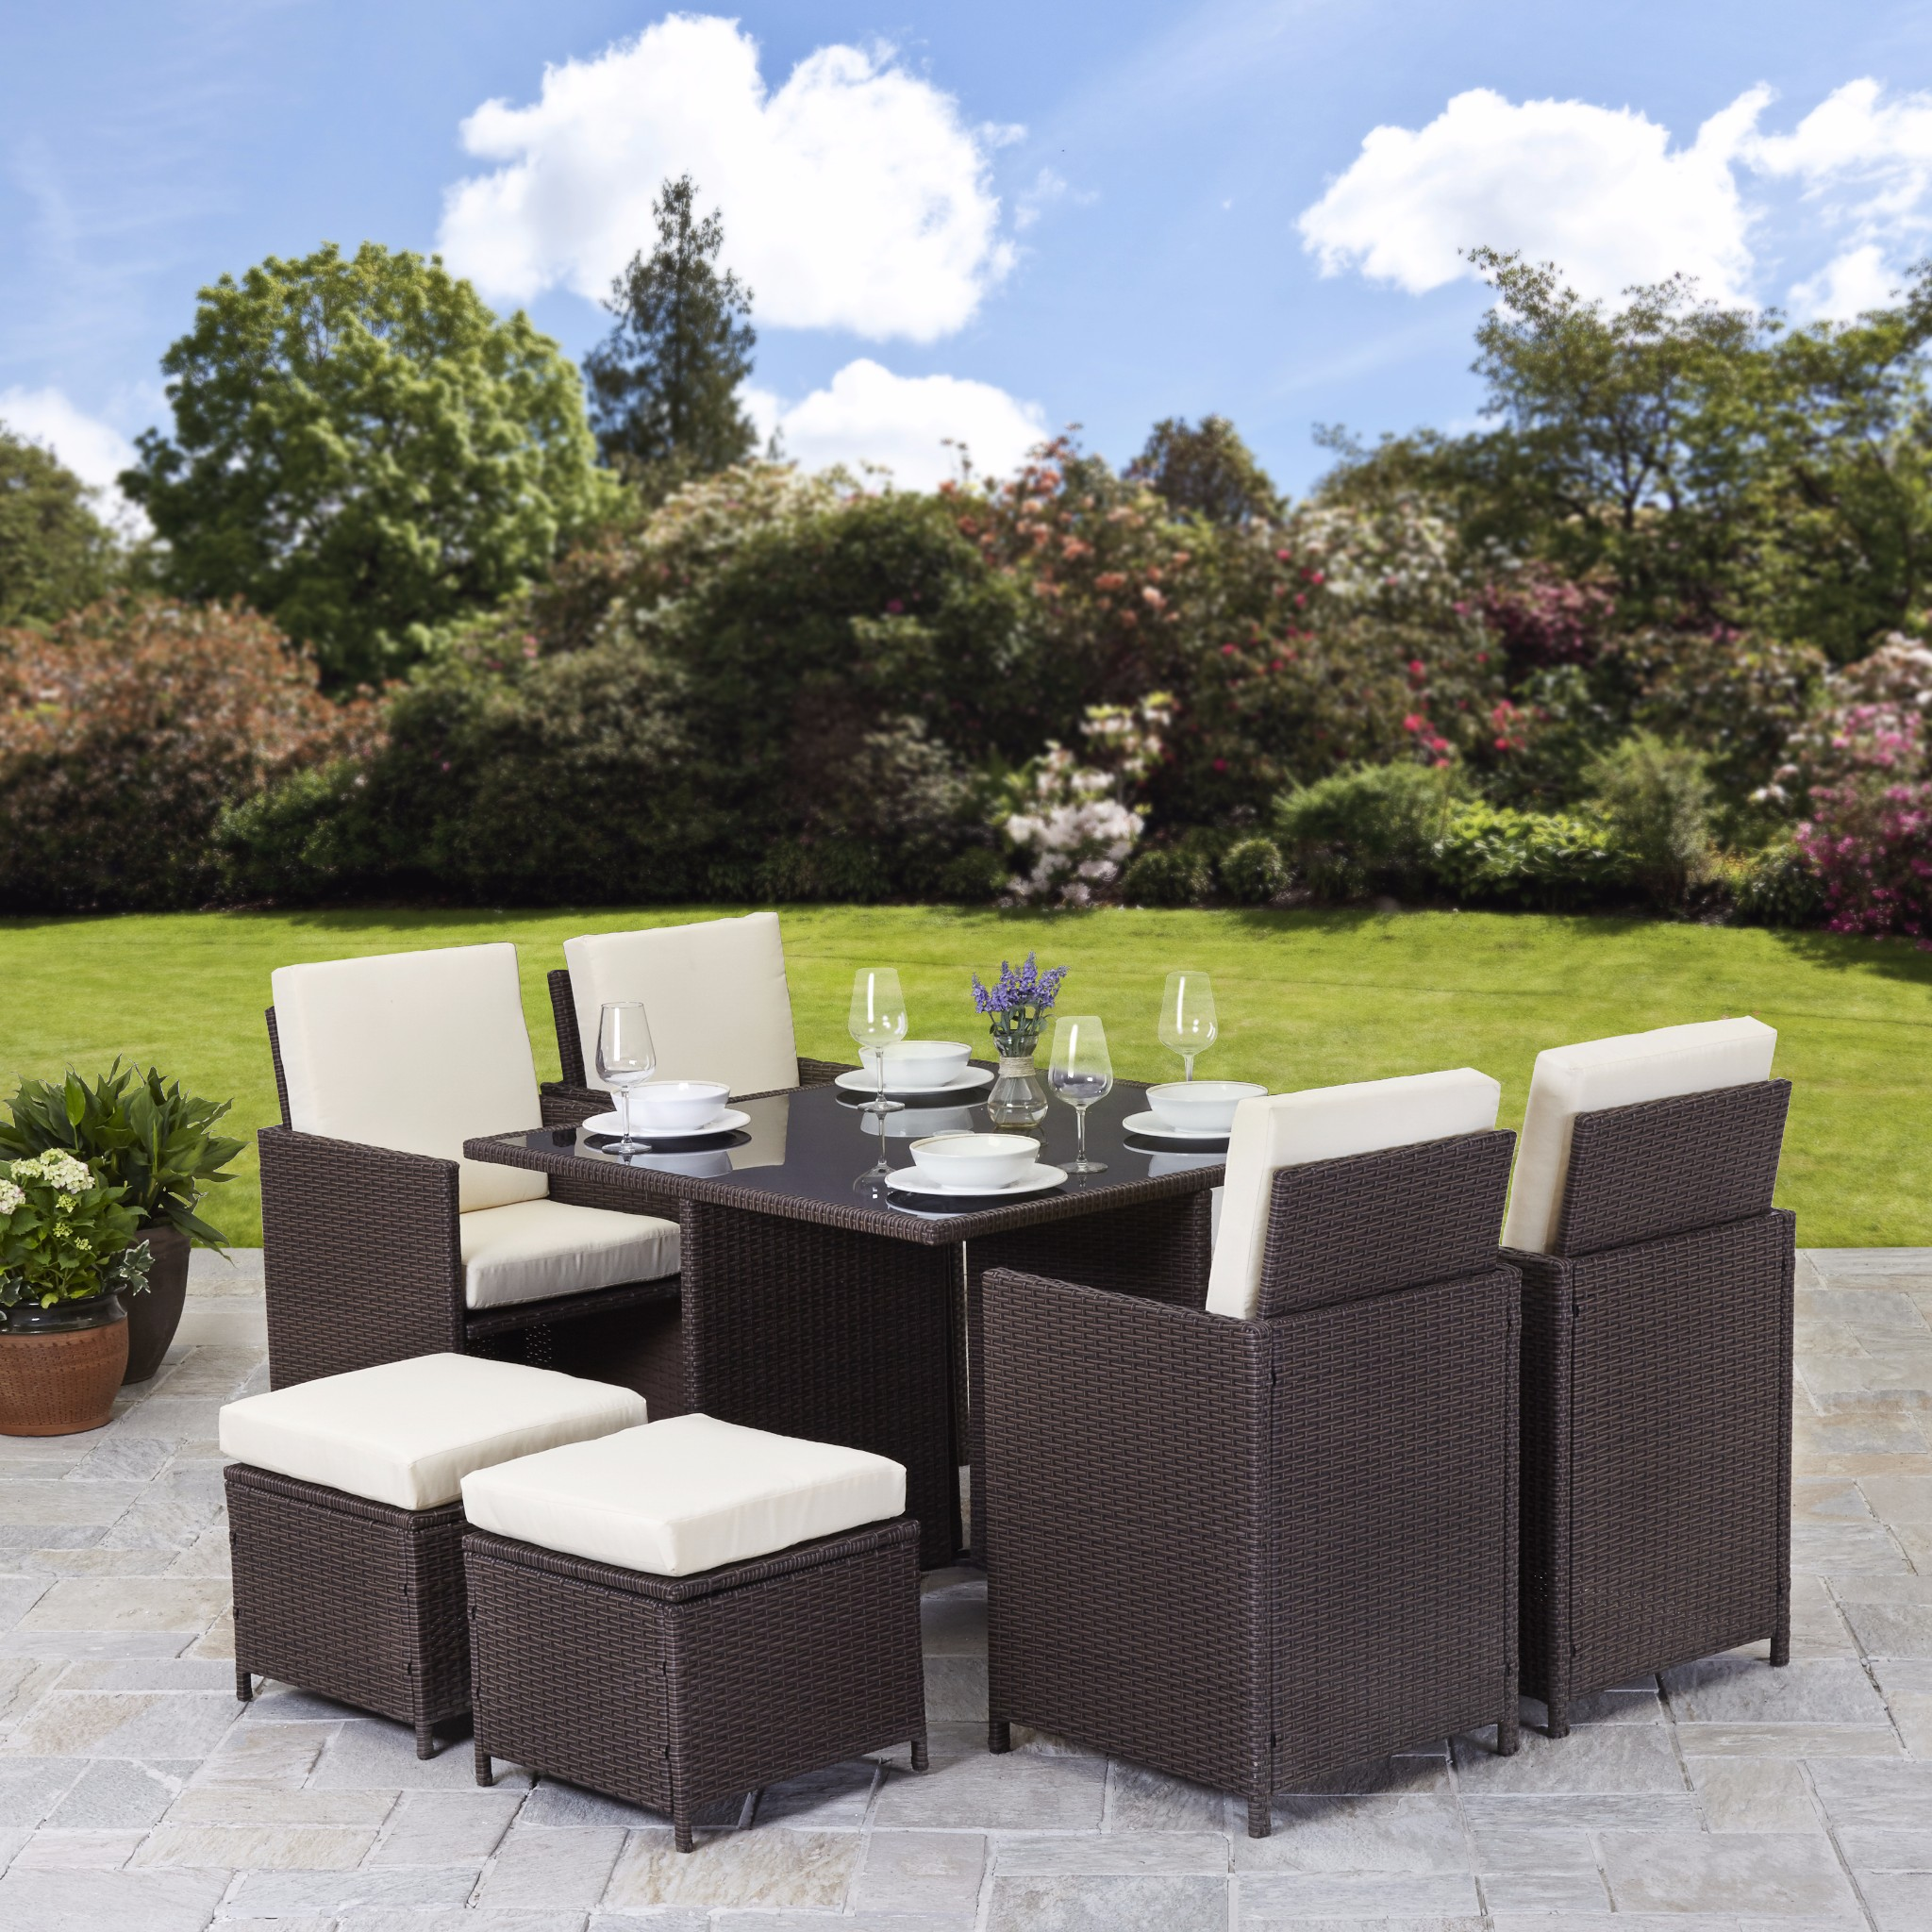 furniture patio set condition new uk delivery cost free brand bella life